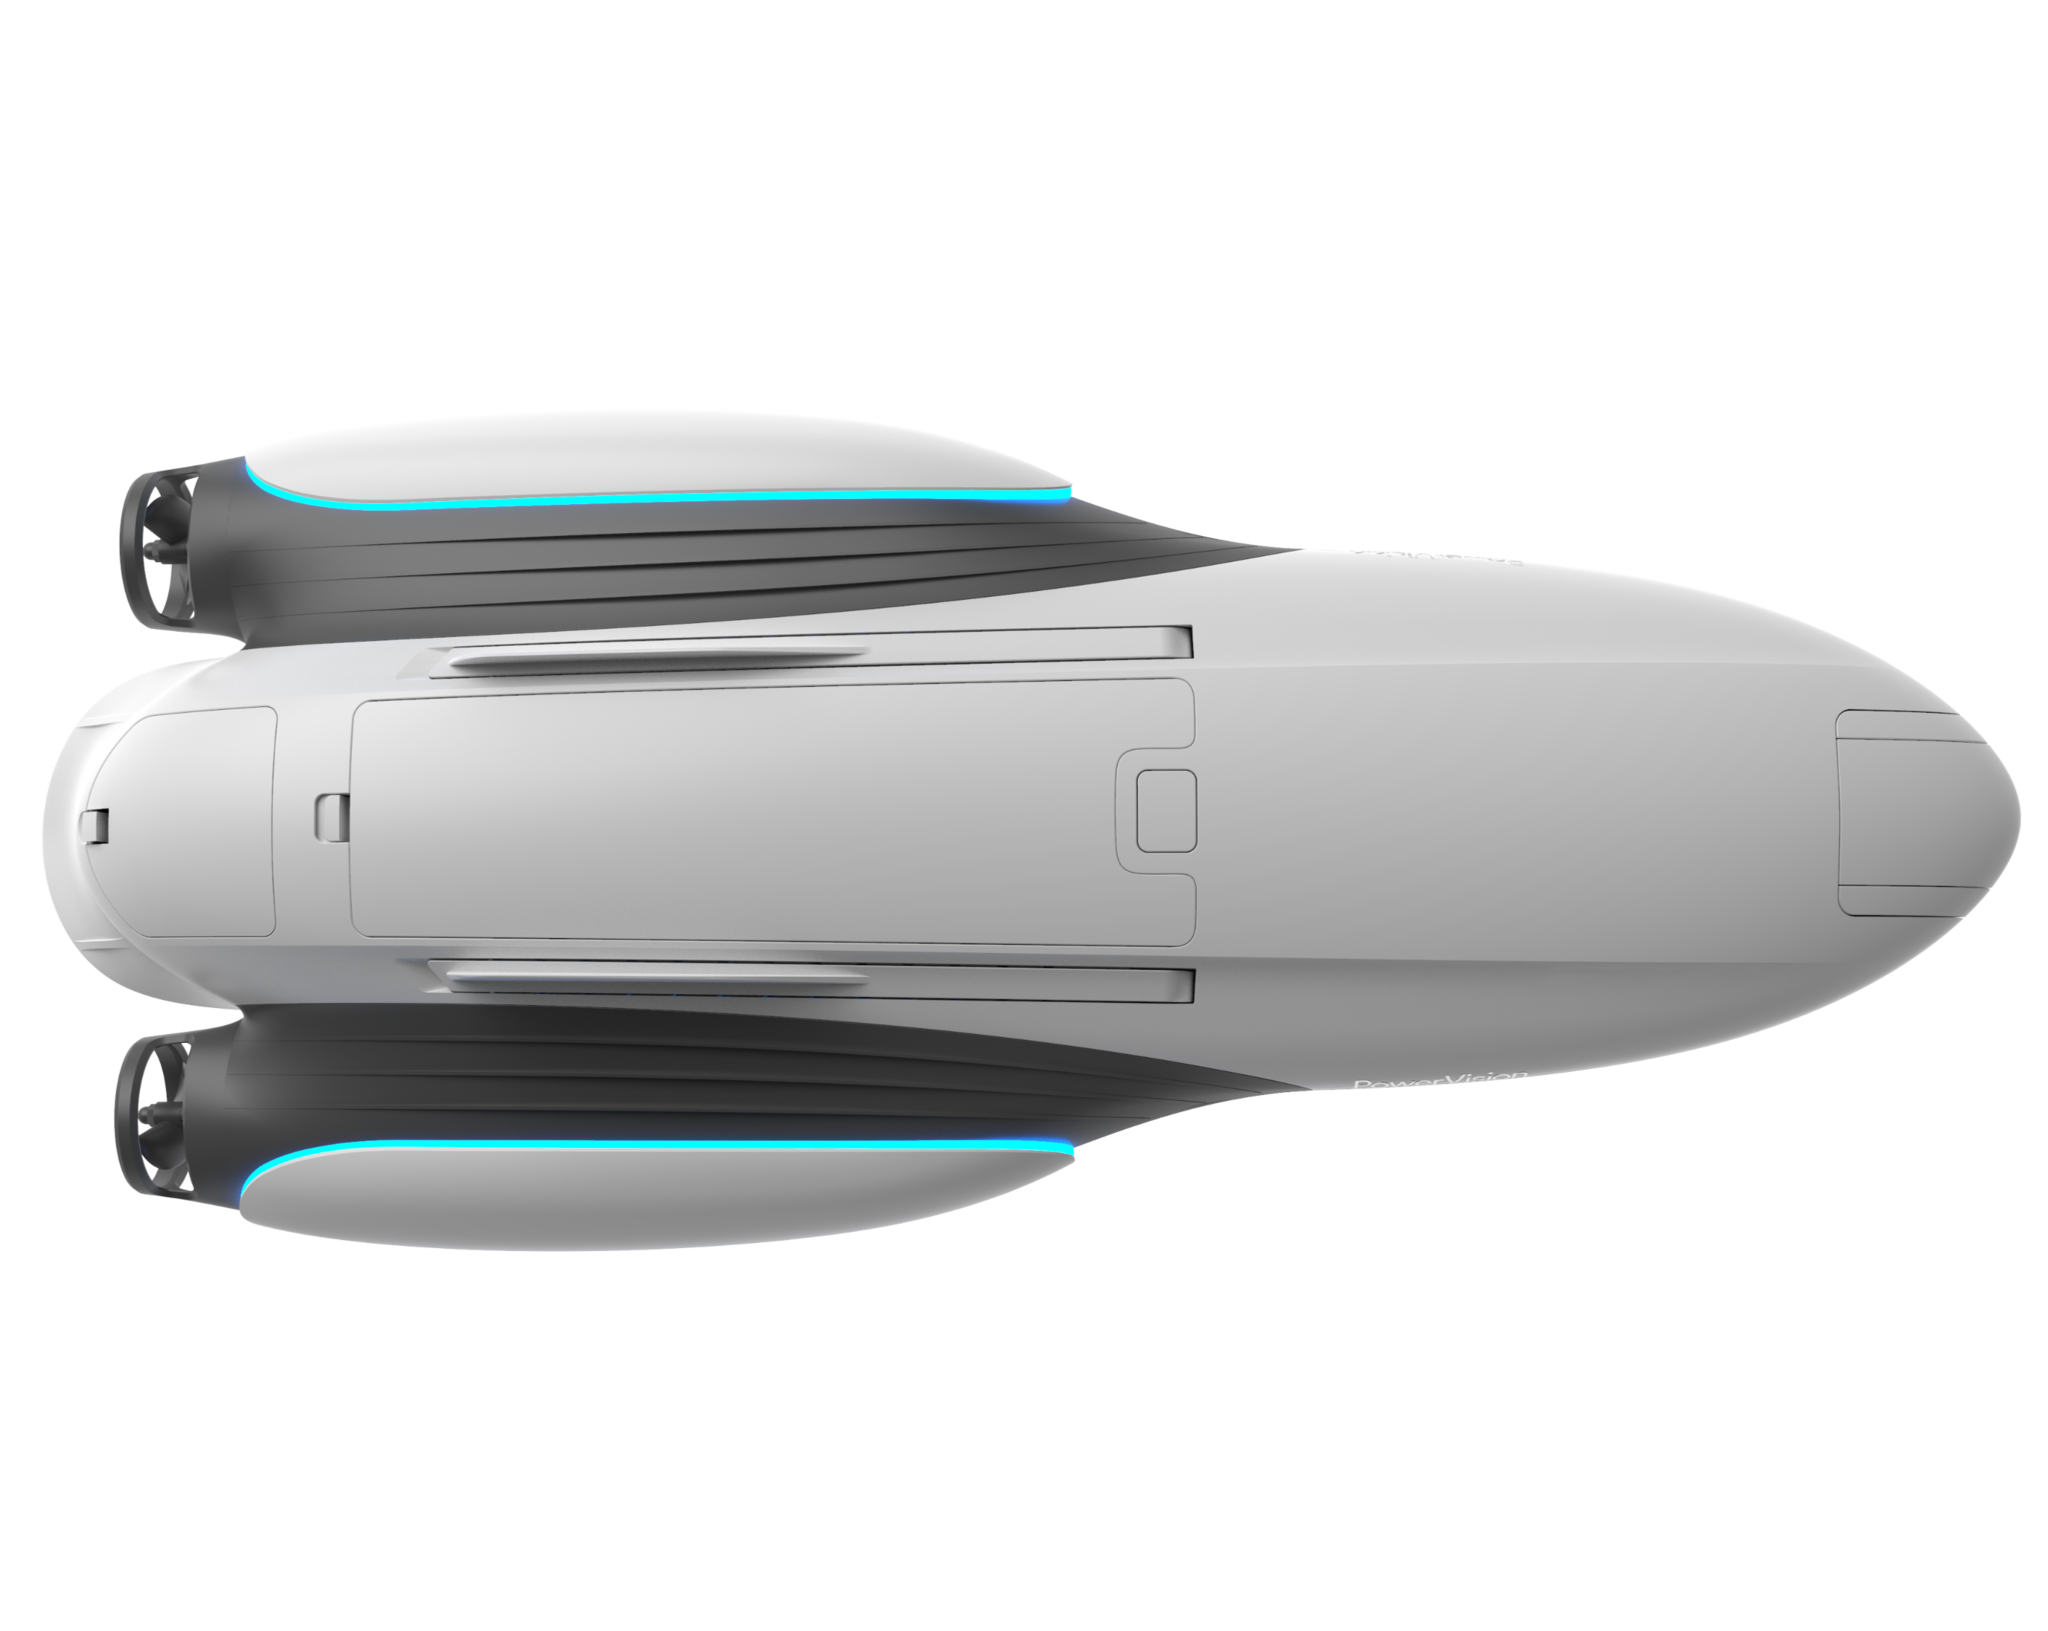 Power Dolphin Water Drone